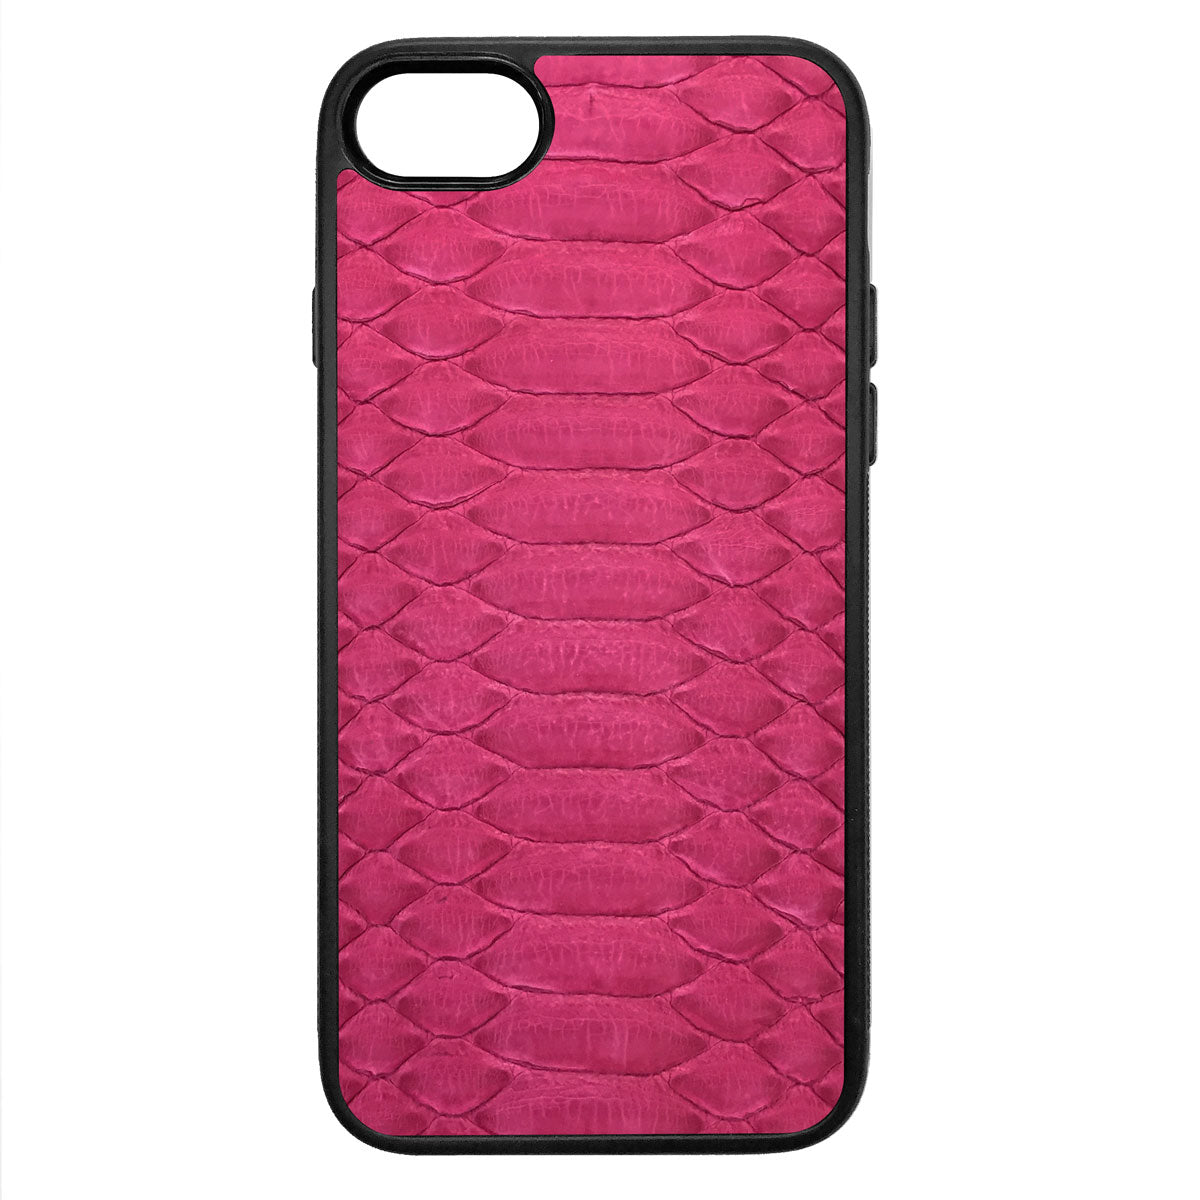 Fuchsia Python iPhone 7 Leather Case